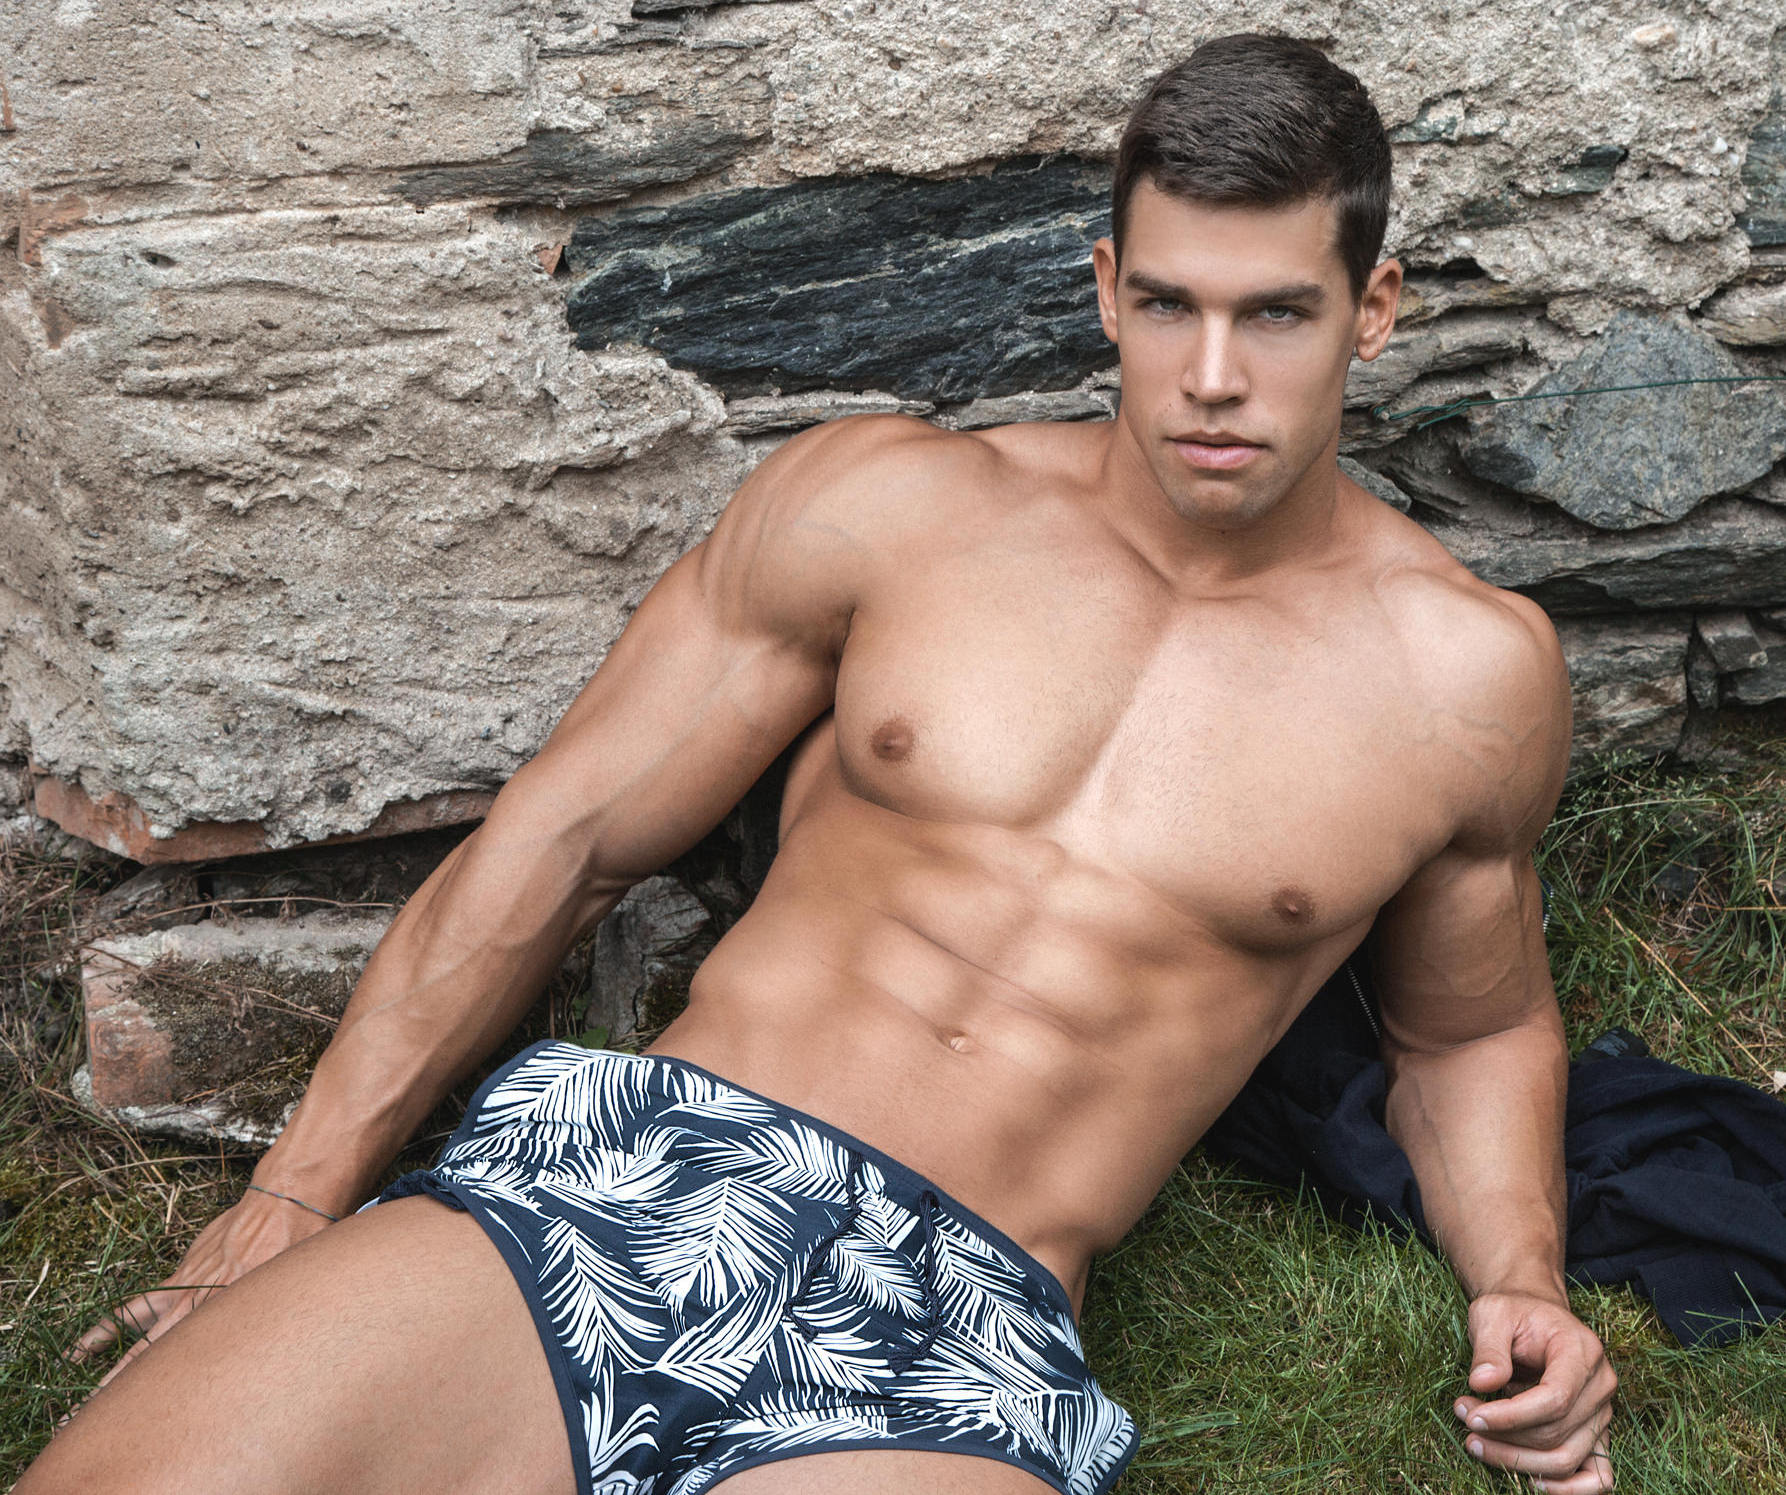 Assure you. kris evans bel ami nude not present